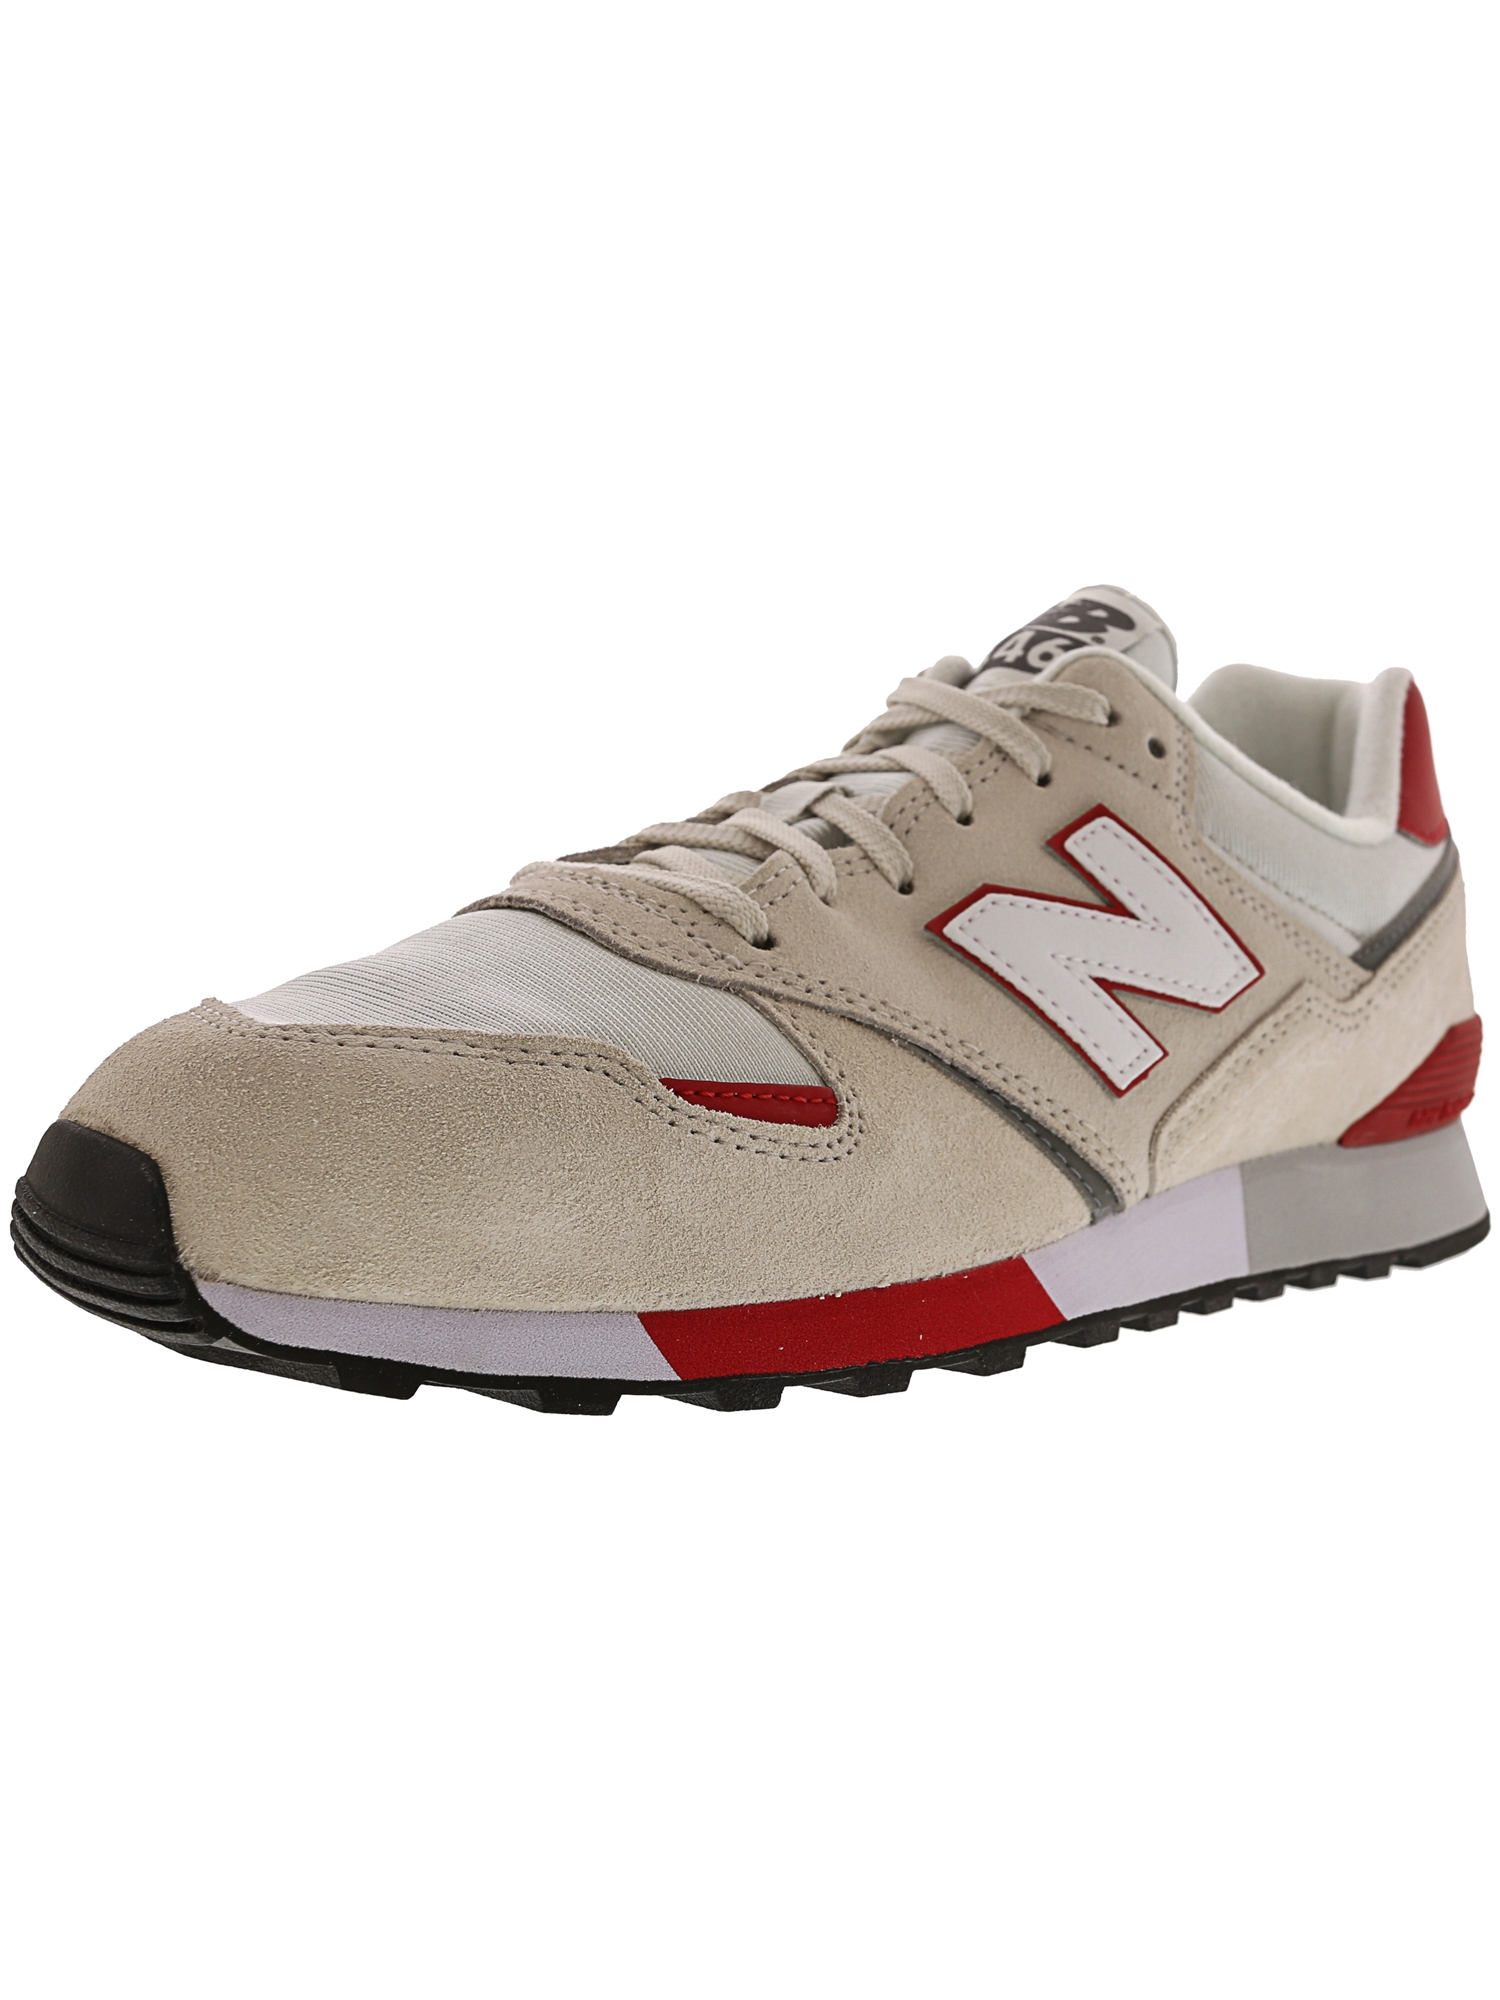 innovative design cdc1d 391c4 New Balance Men's U446 Wr Ankle-High Leather Fashion Sneaker - 11M